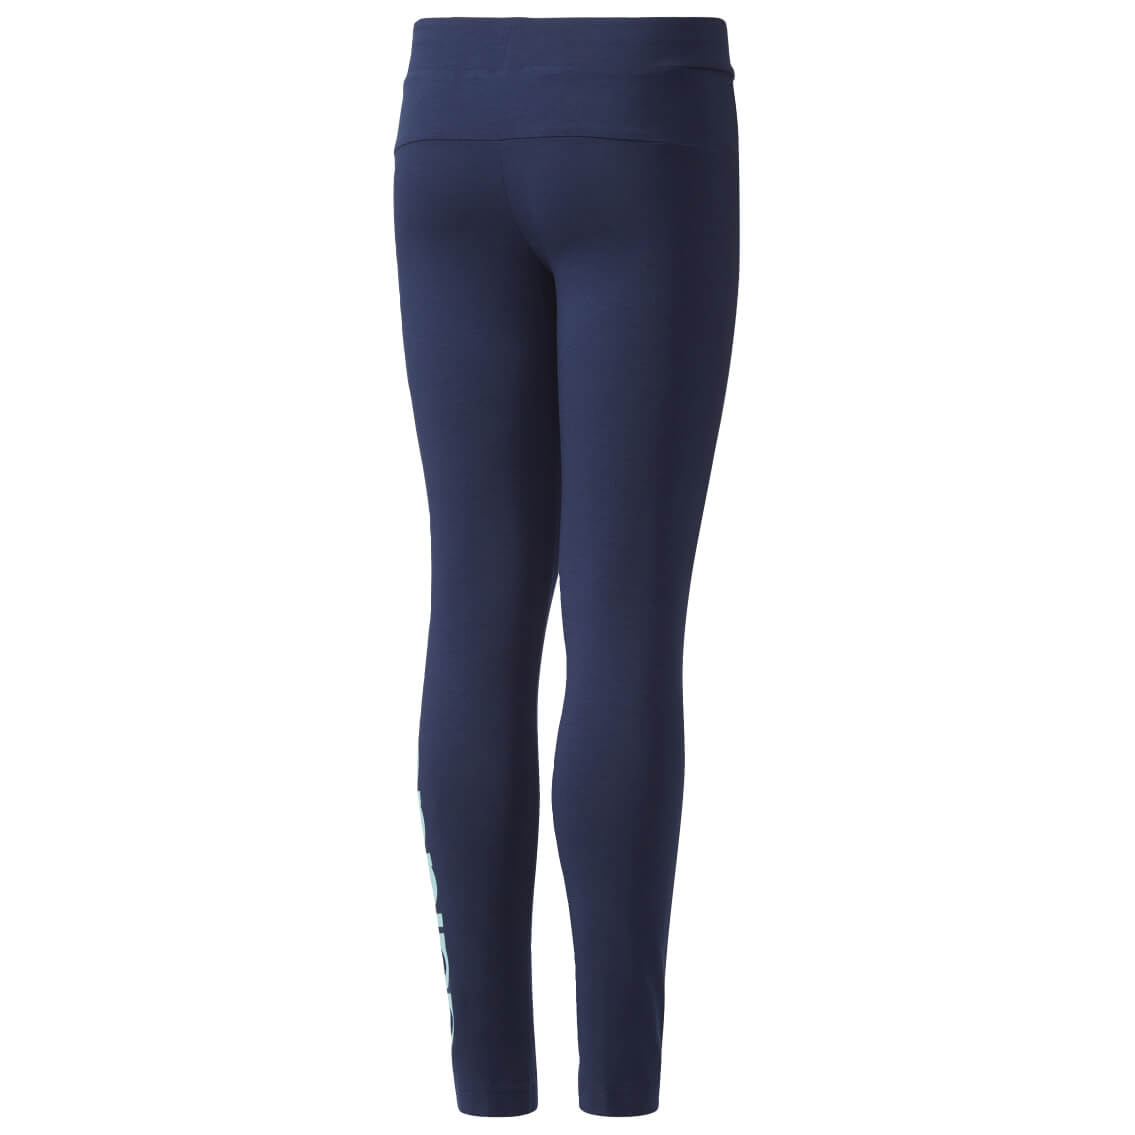 Shop from our huge selection of men's tracksuit bottoms at discounted prices. We have 's of track pants, sweatpants & slim fit joggers from top sports brands like adidas, Under Armour, Puma, Canterbury, Nike at sale prices. Plus you'll also find official training pants from Chelsea, Man Utd, Spurs, Liverpool, Arsenal etc.